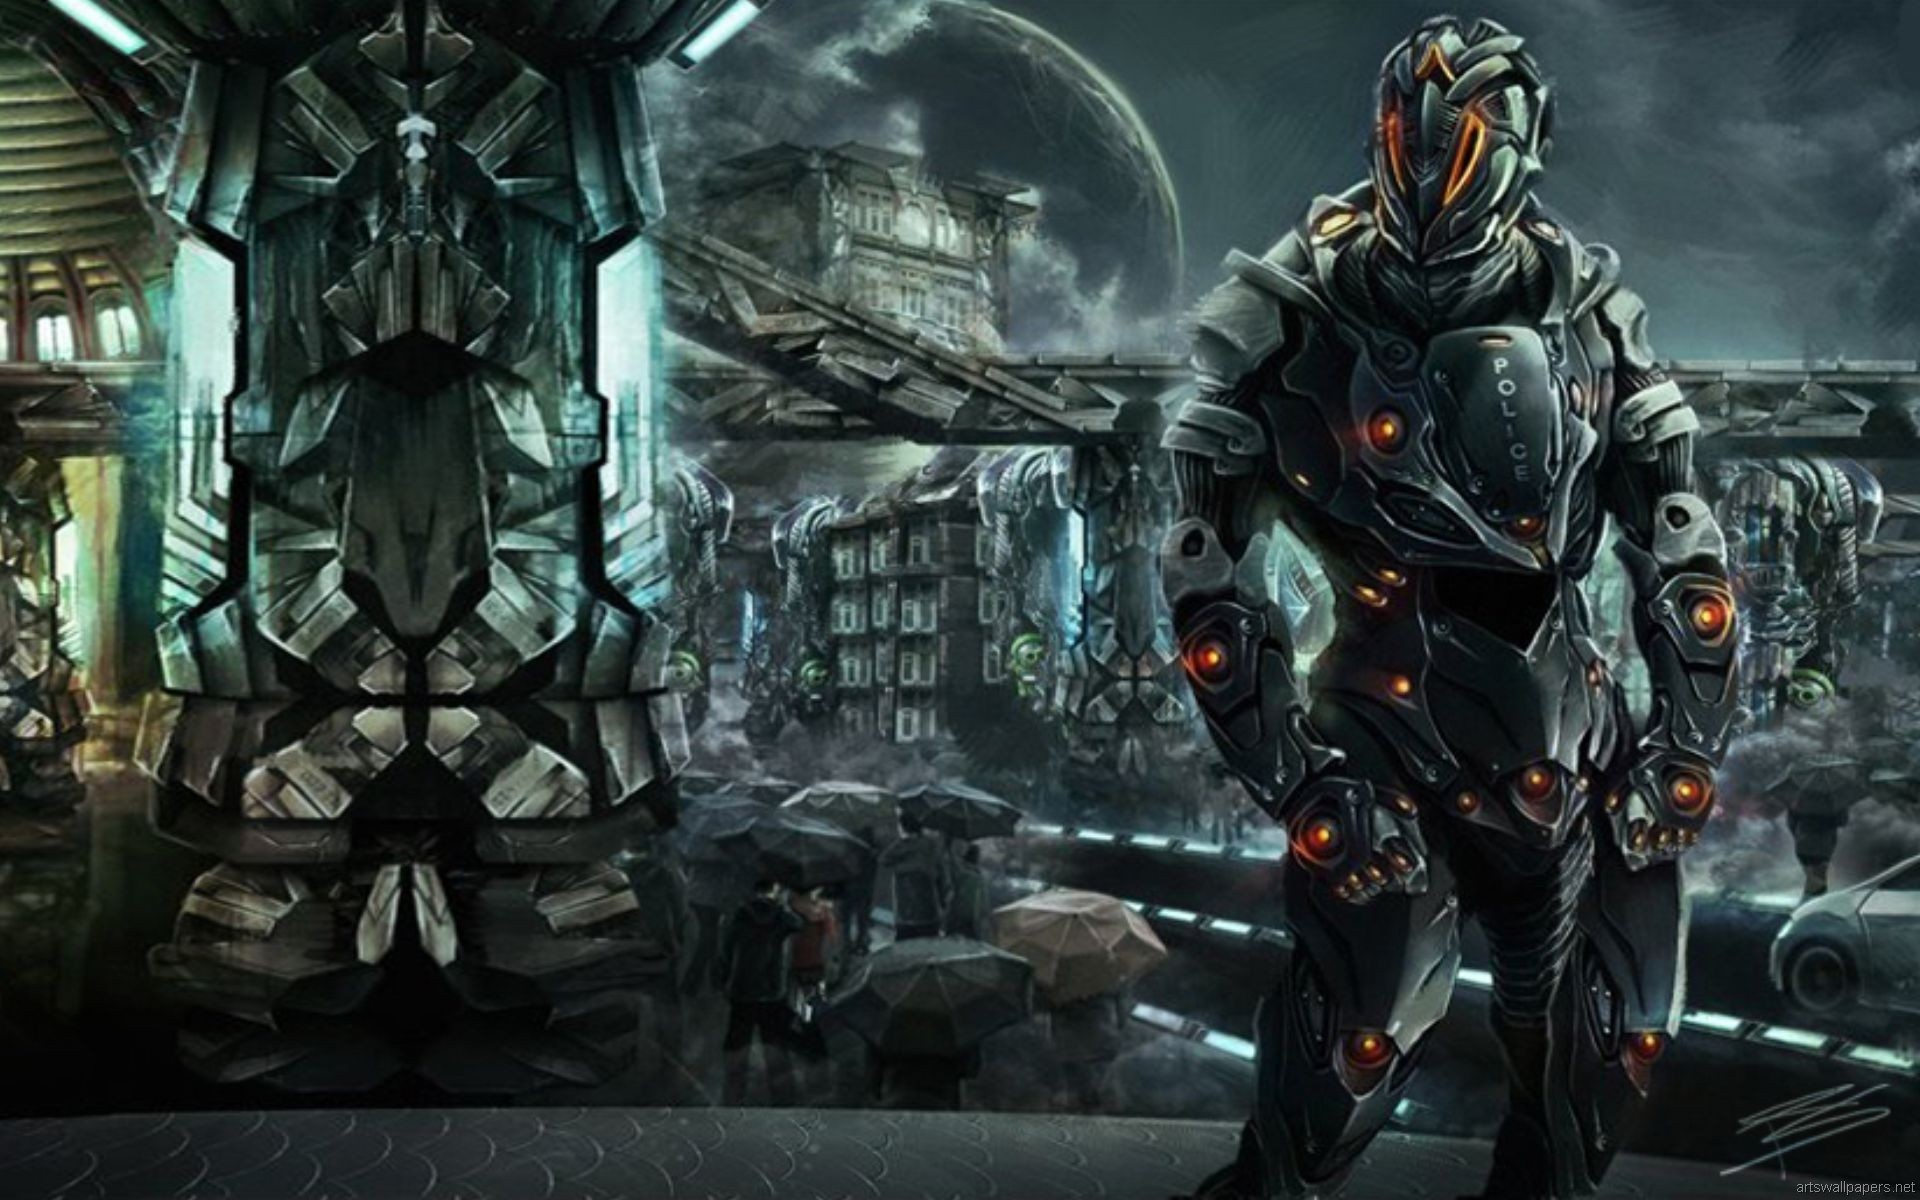 1920x1200 Download wallpapers download 1680x1050 science fiction wallpaper .